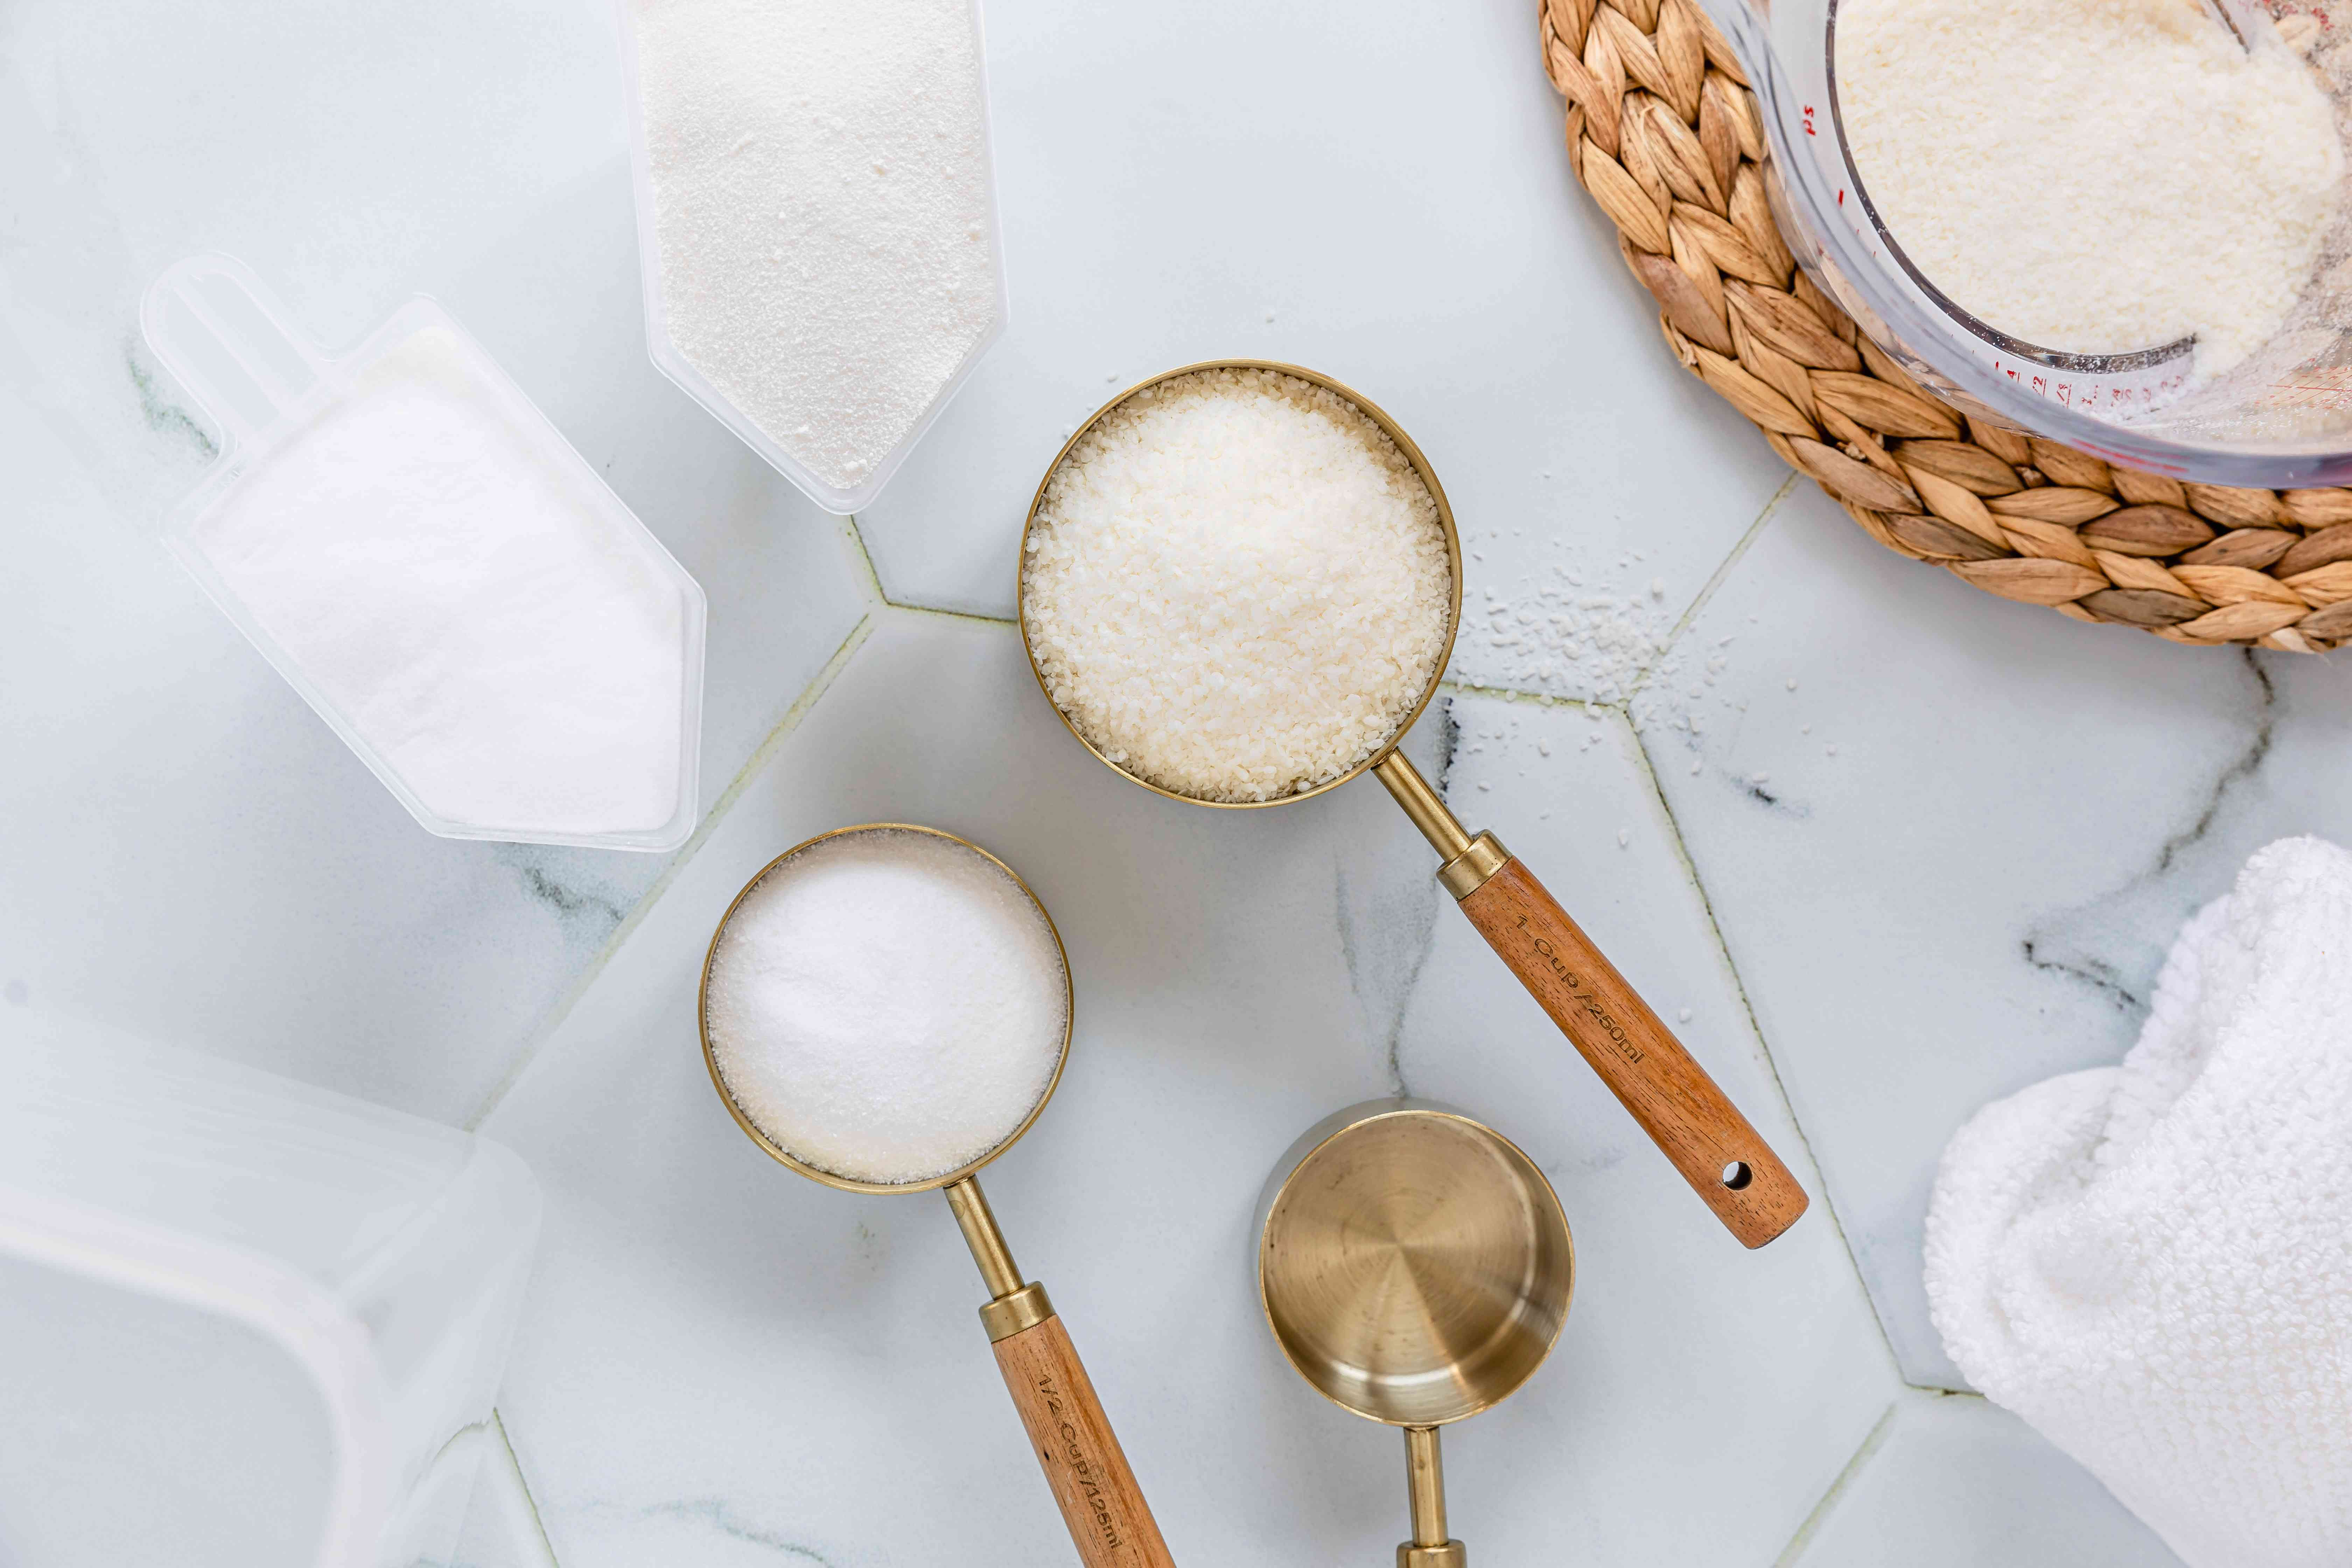 DIY powdered laundry detergent with grated soap, baking soda and borax in metal spoons